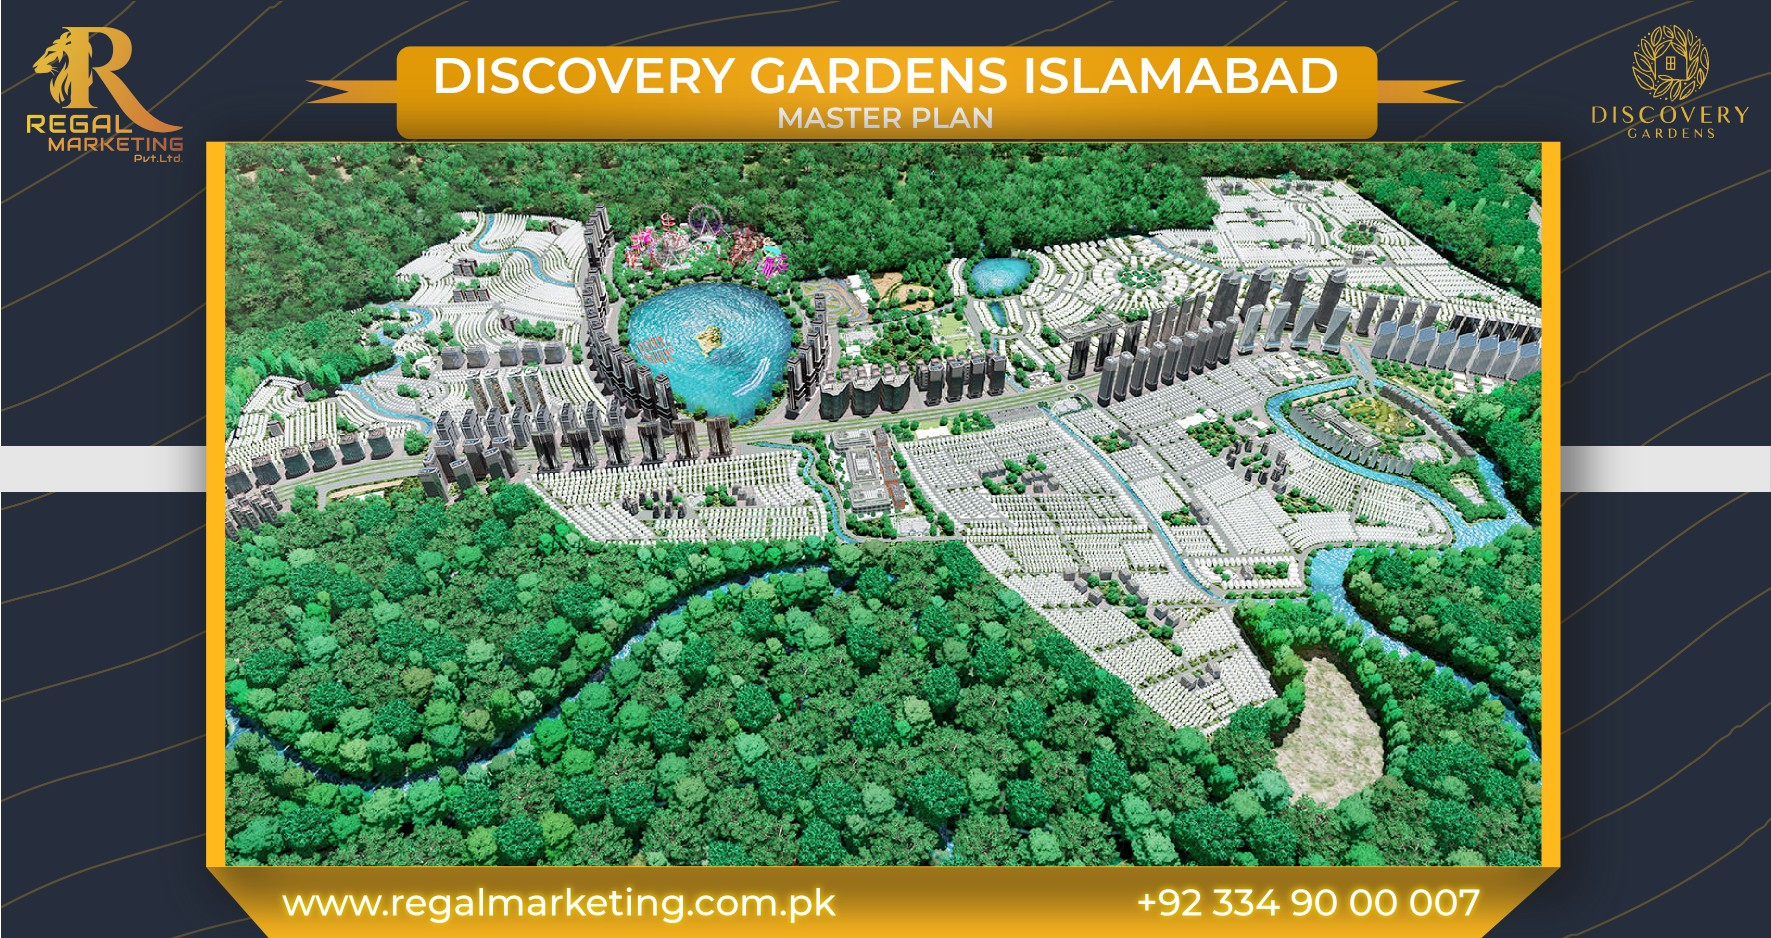 Master Plan of Discovery Gardens Islamabad